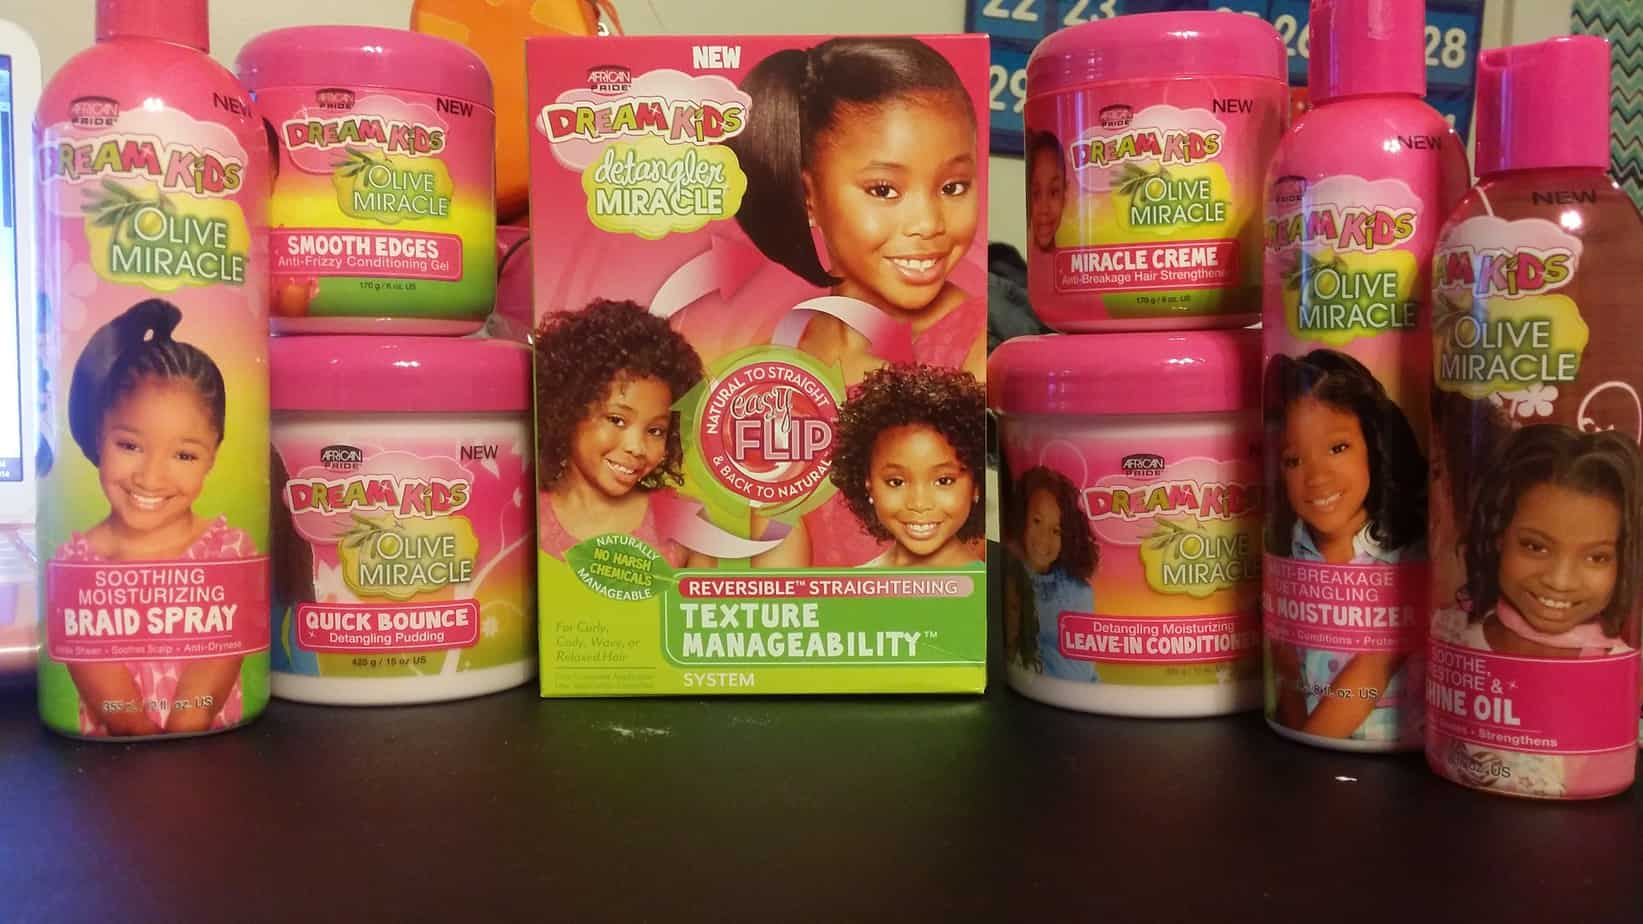 Enjoyable Dream Kids Detangler Miracle Texture Manageability System Offers Natural Hairstyles Runnerswayorg